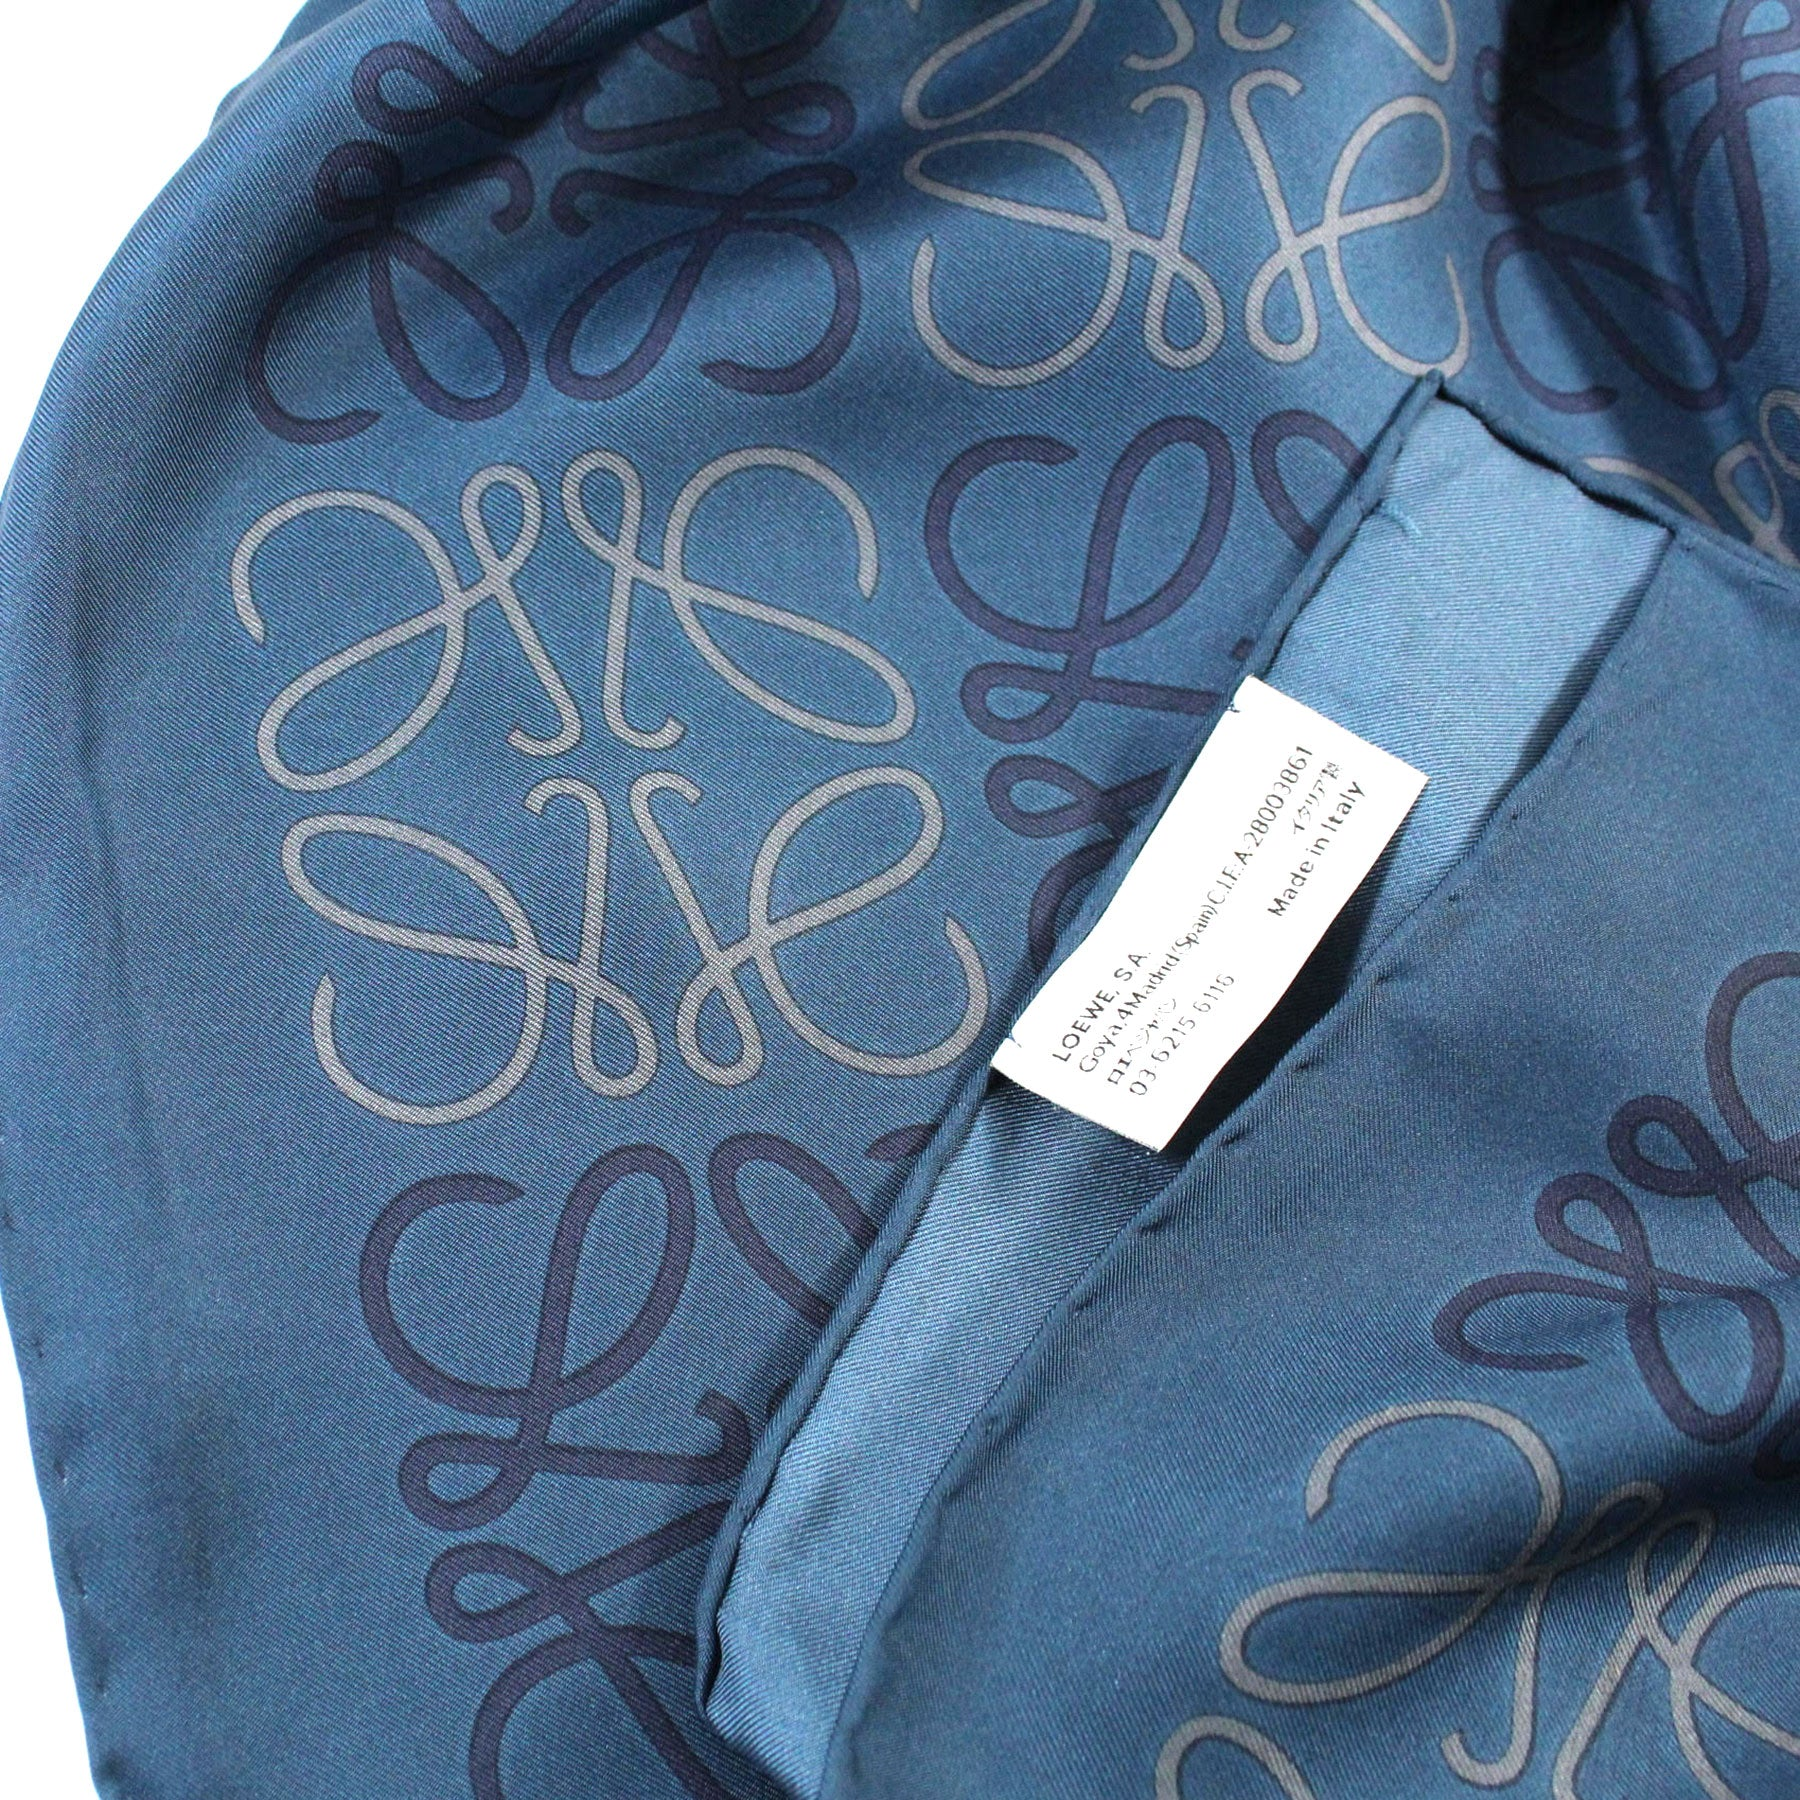 Loewe Silk Scarf Dark Blue Anagram - Large Square Scarf